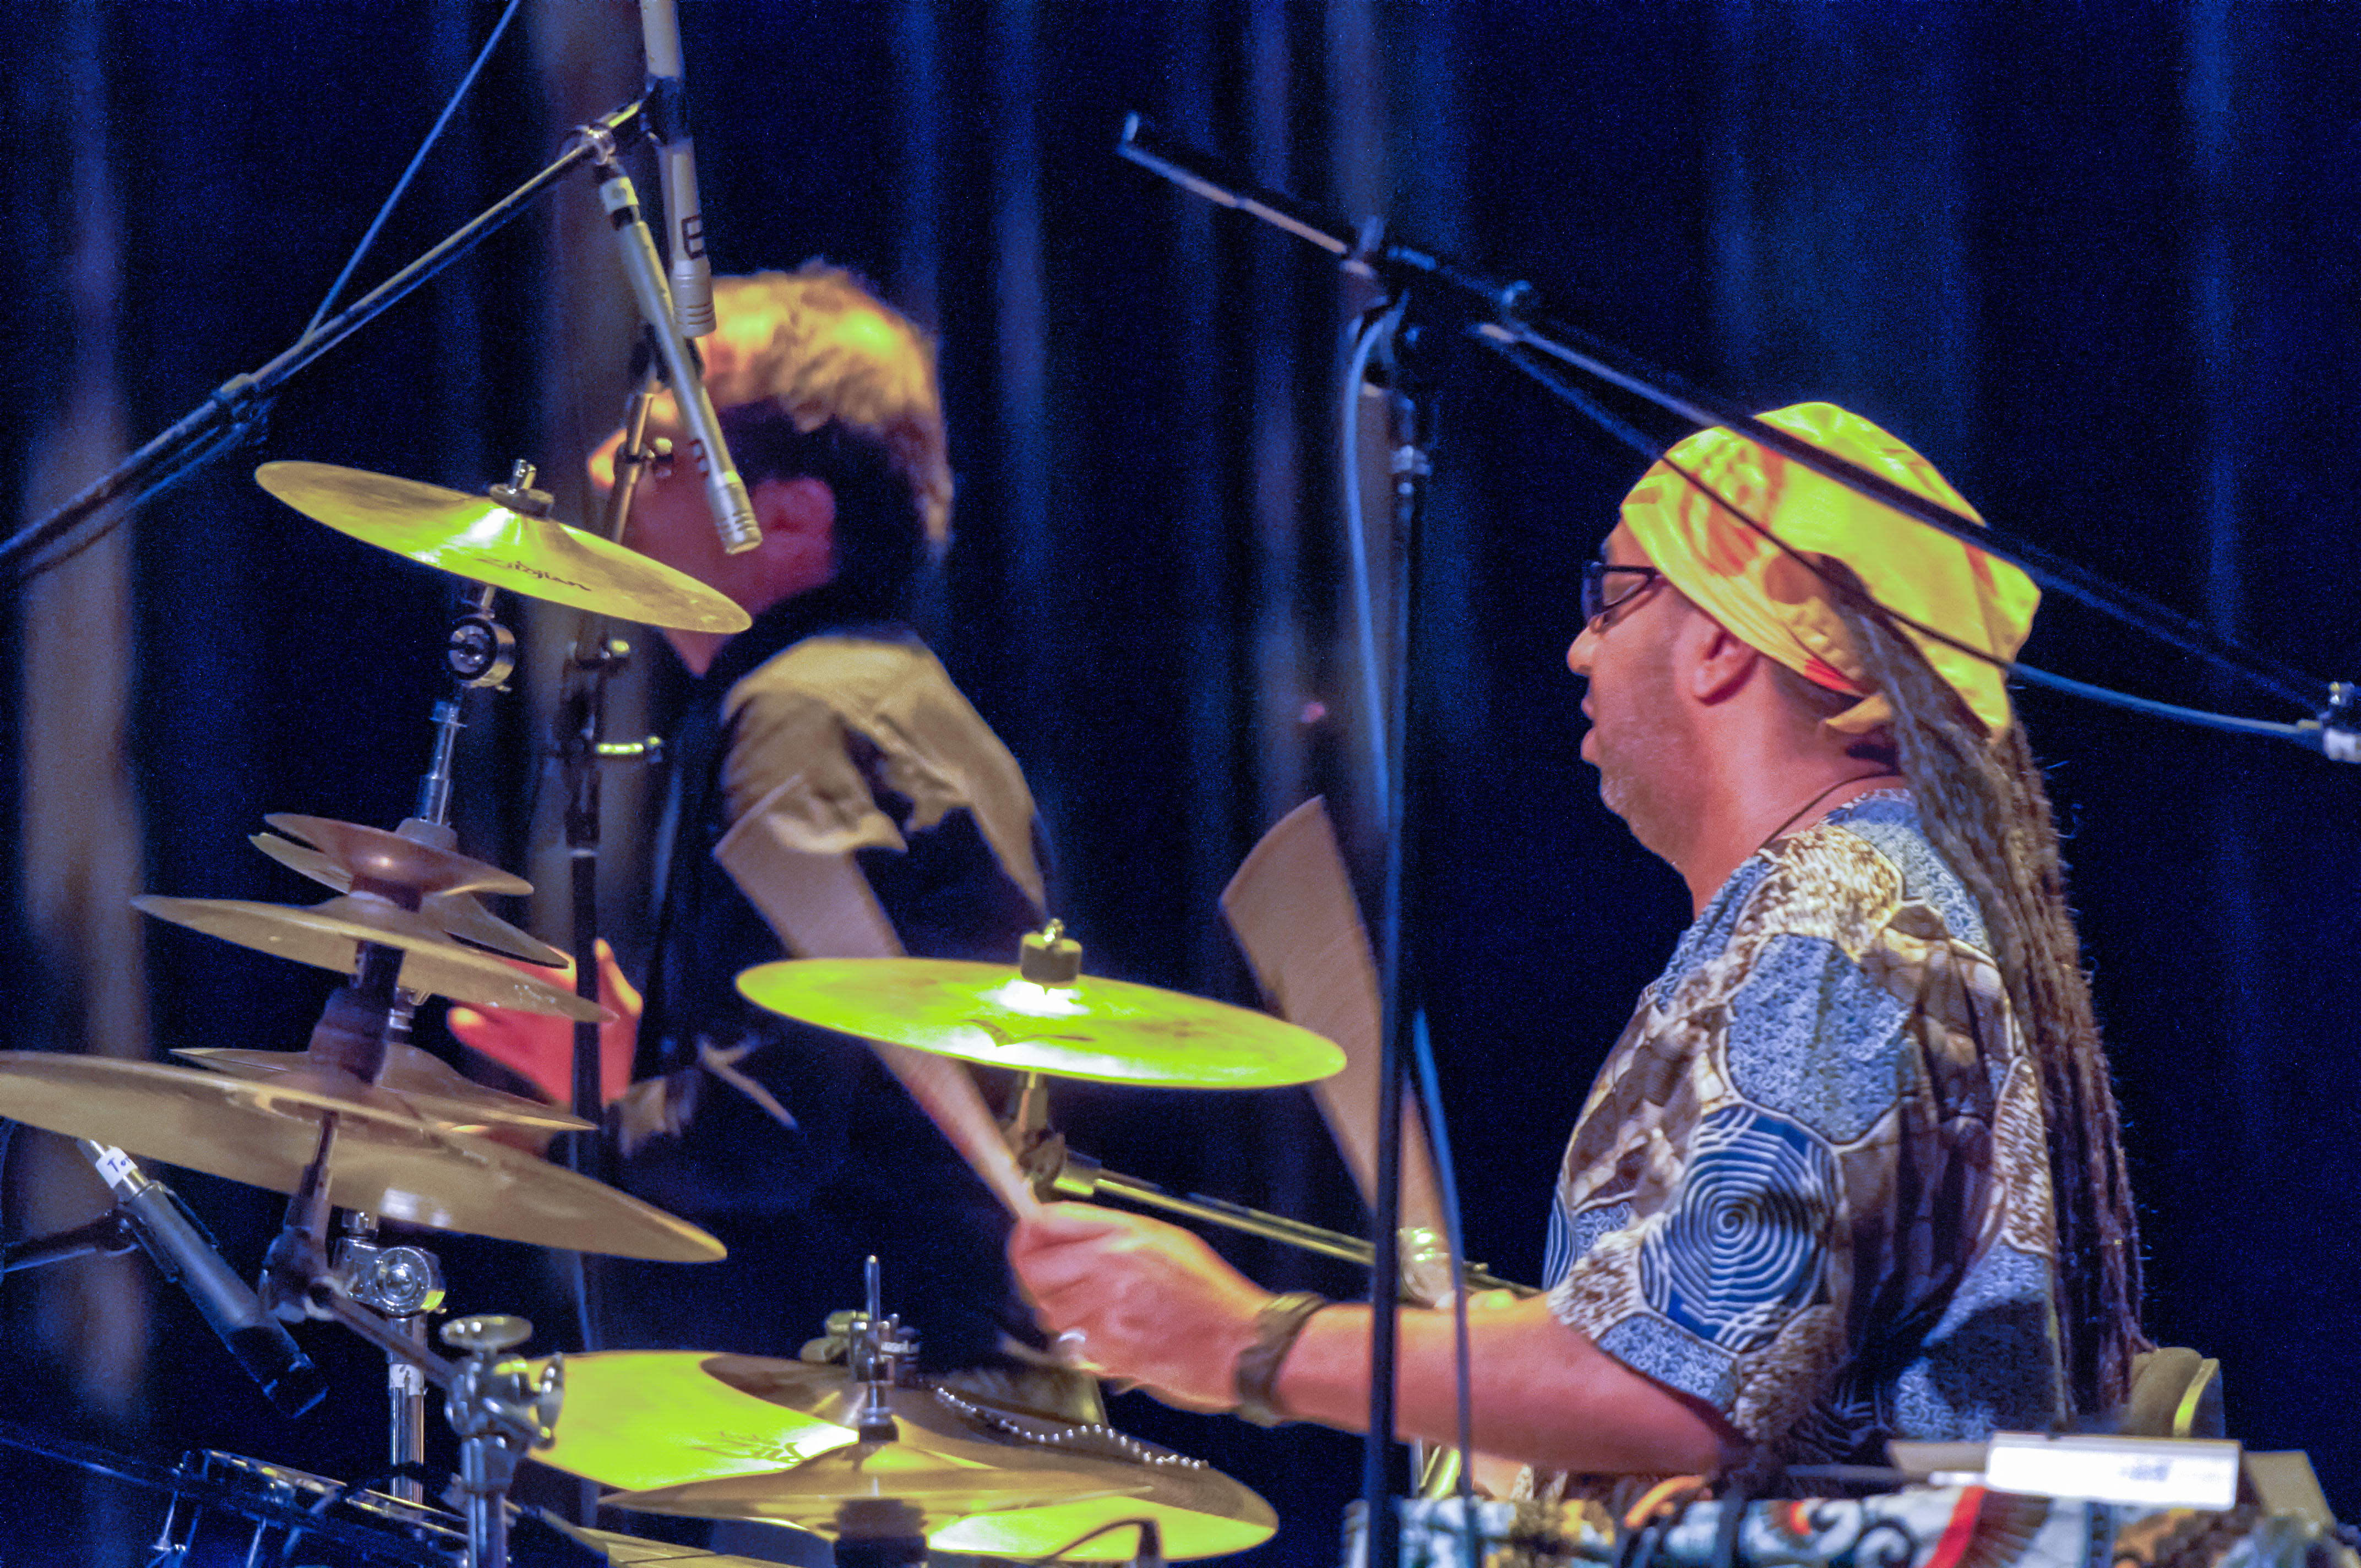 Marque gilmore with omar sosa and the afri-lectric experience at the tempe arts center